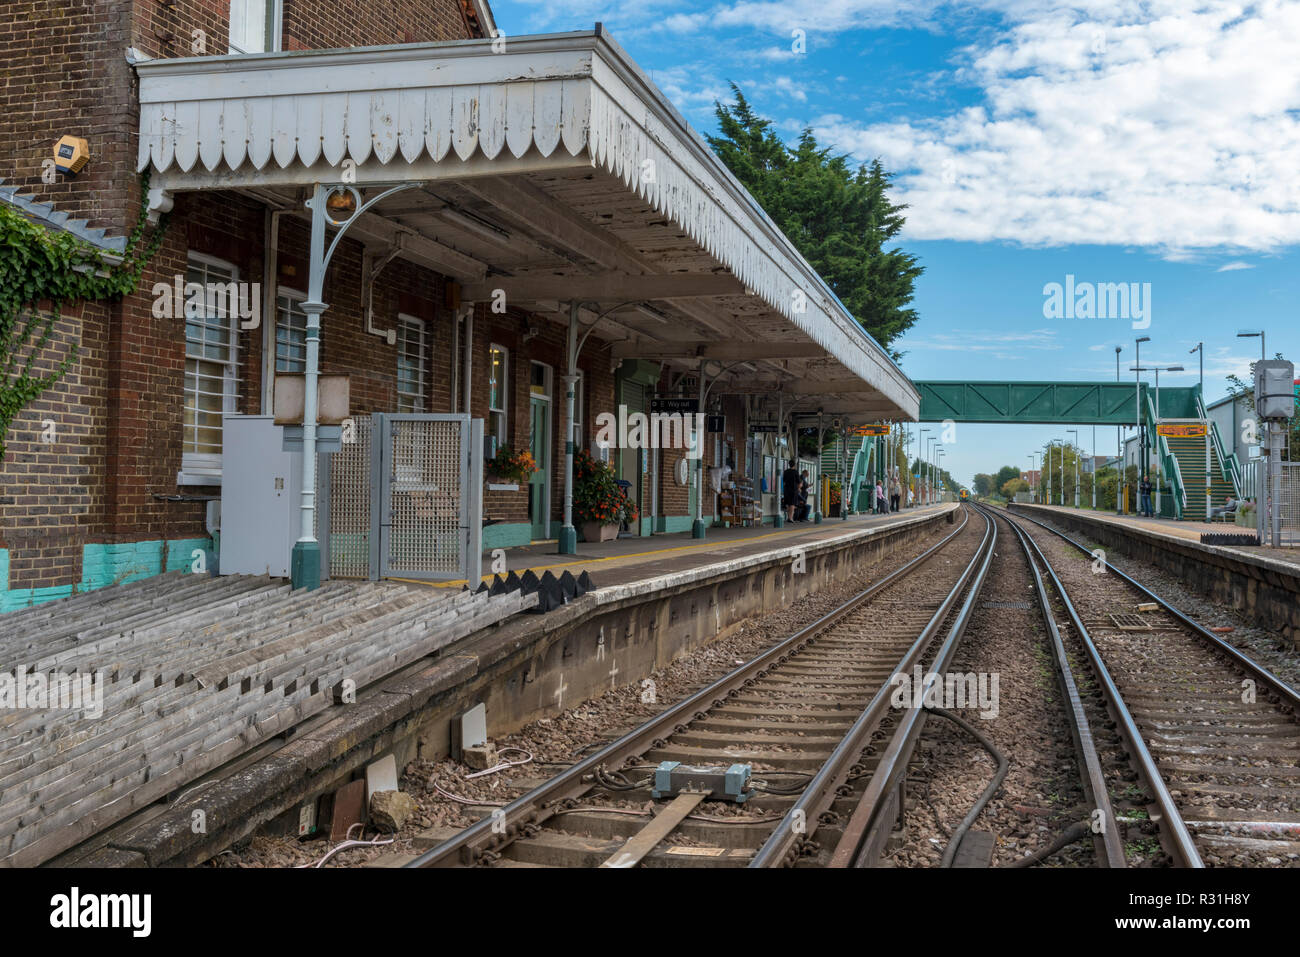 angmering railway station in west sussex. rural halt or country rail station on a network branch line. - Stock Image